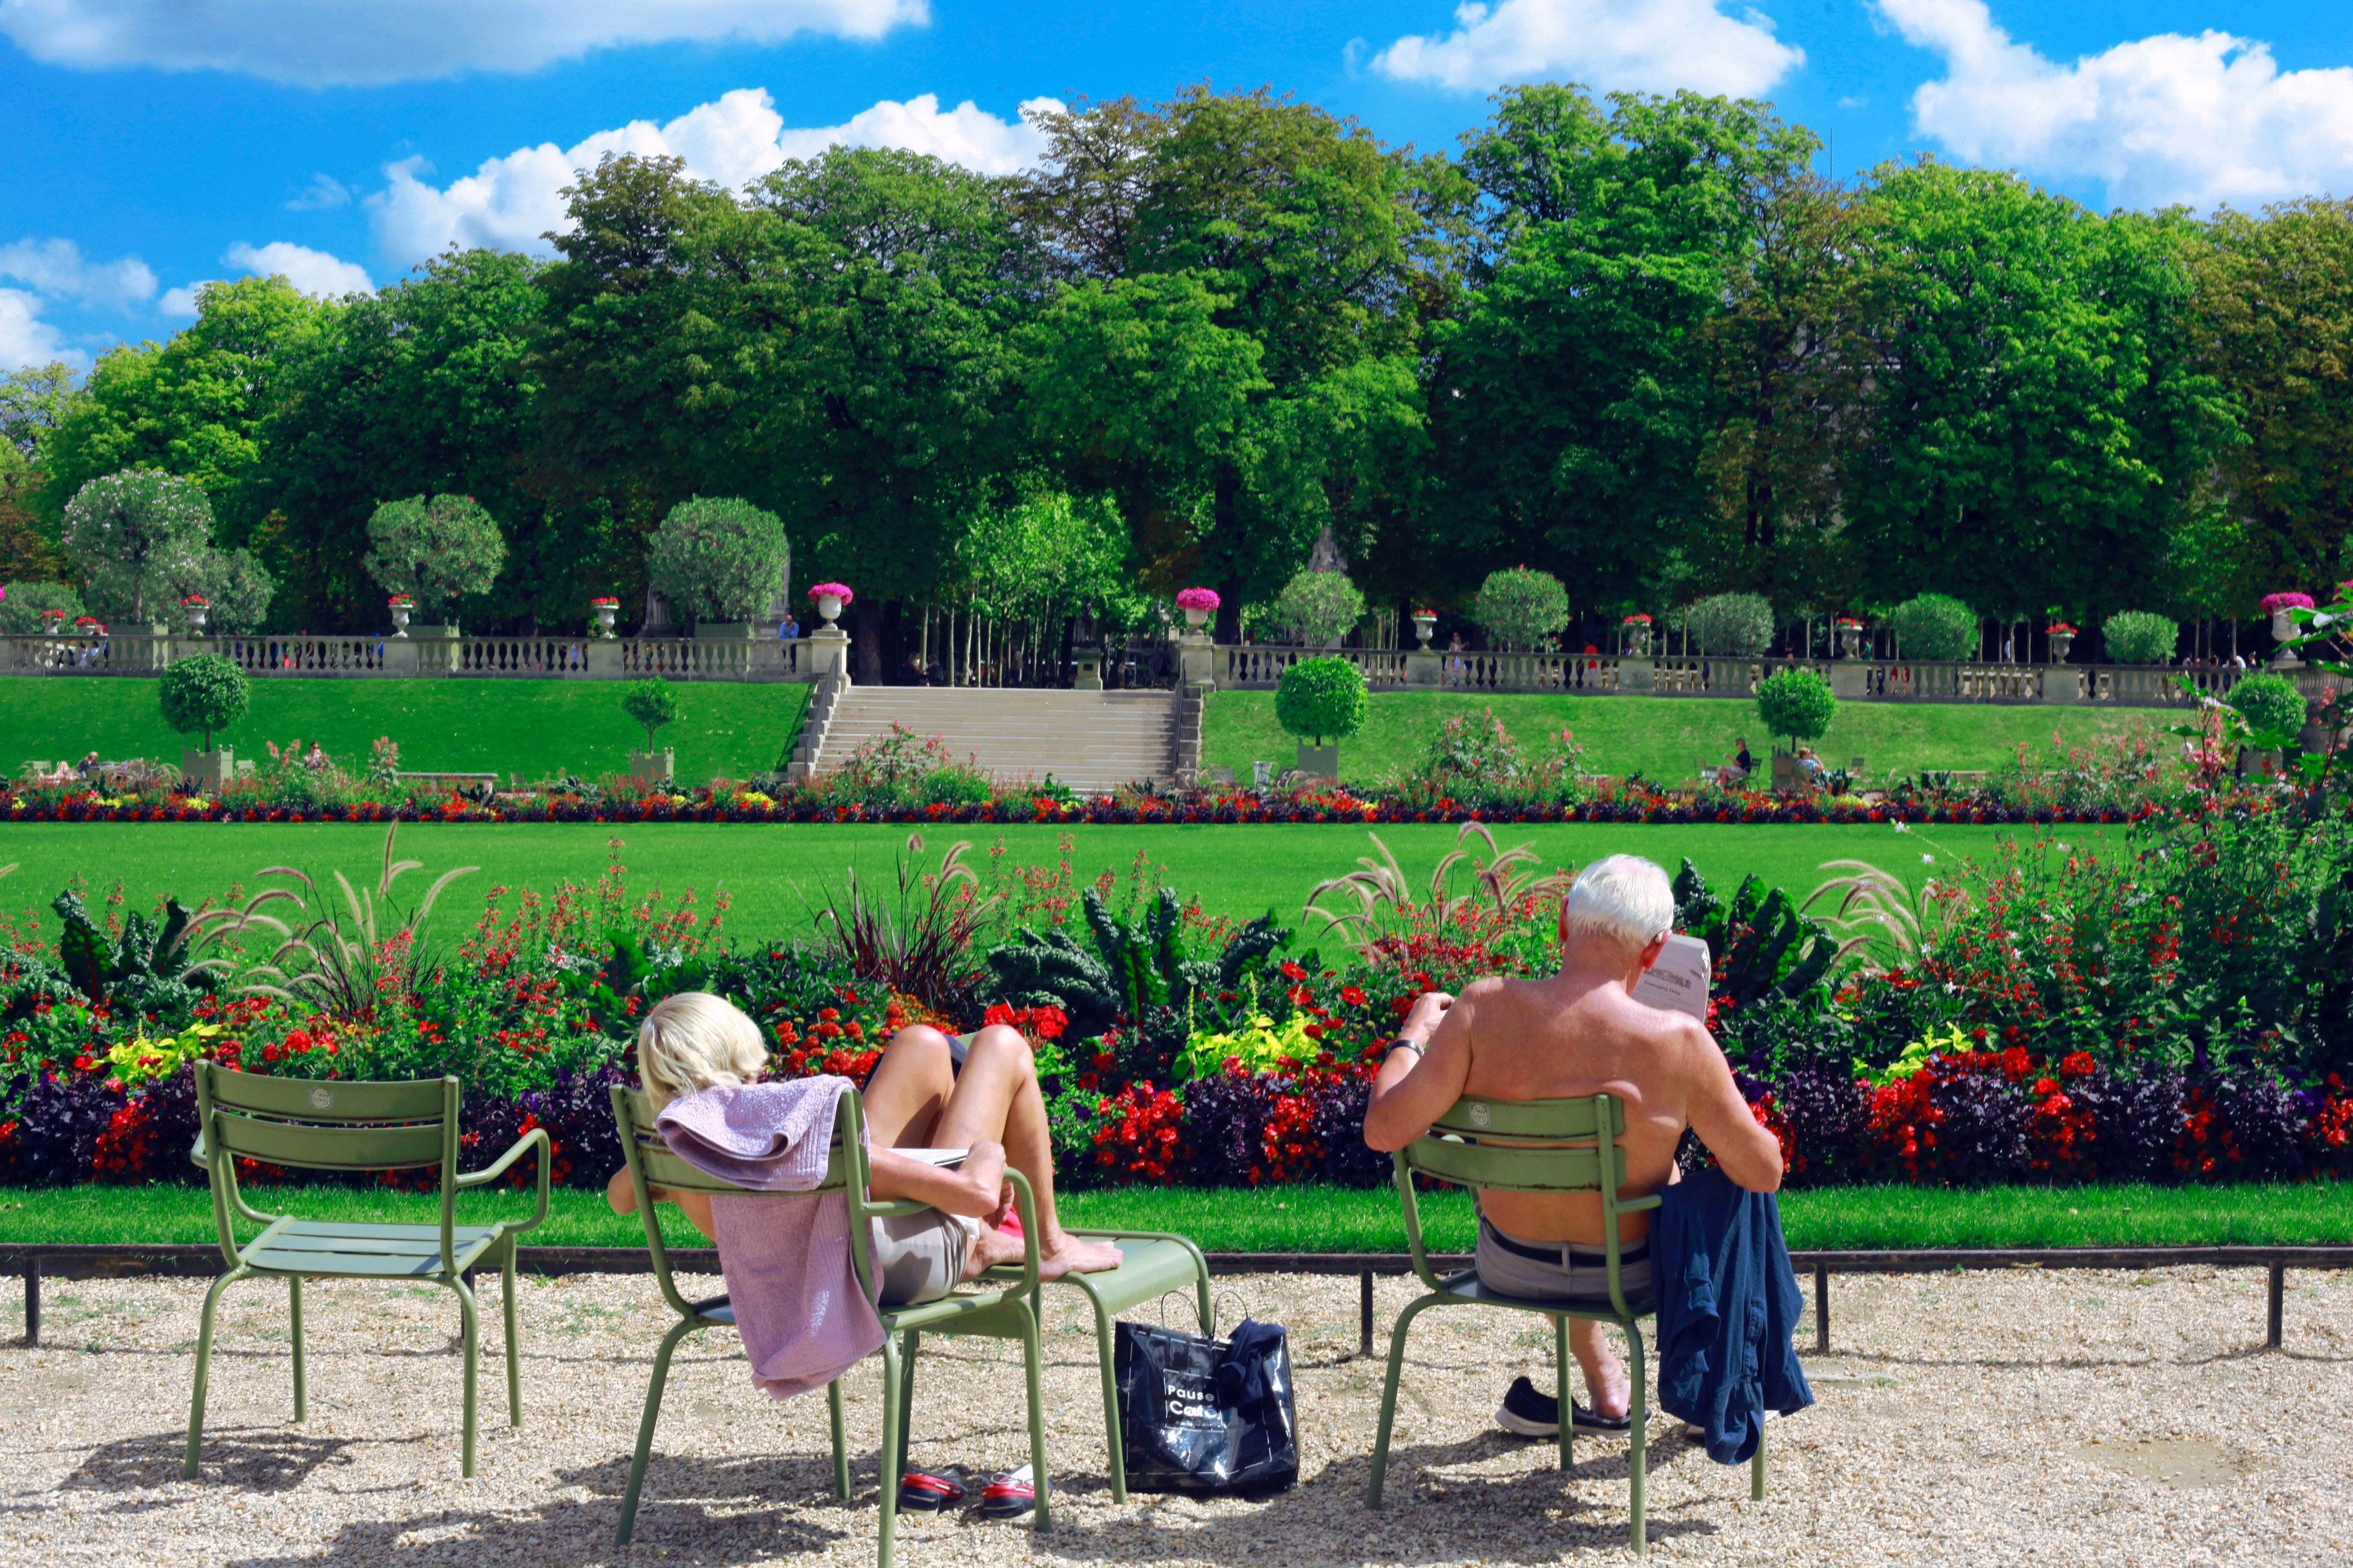 Man and woman sitting on green chairs in a garden